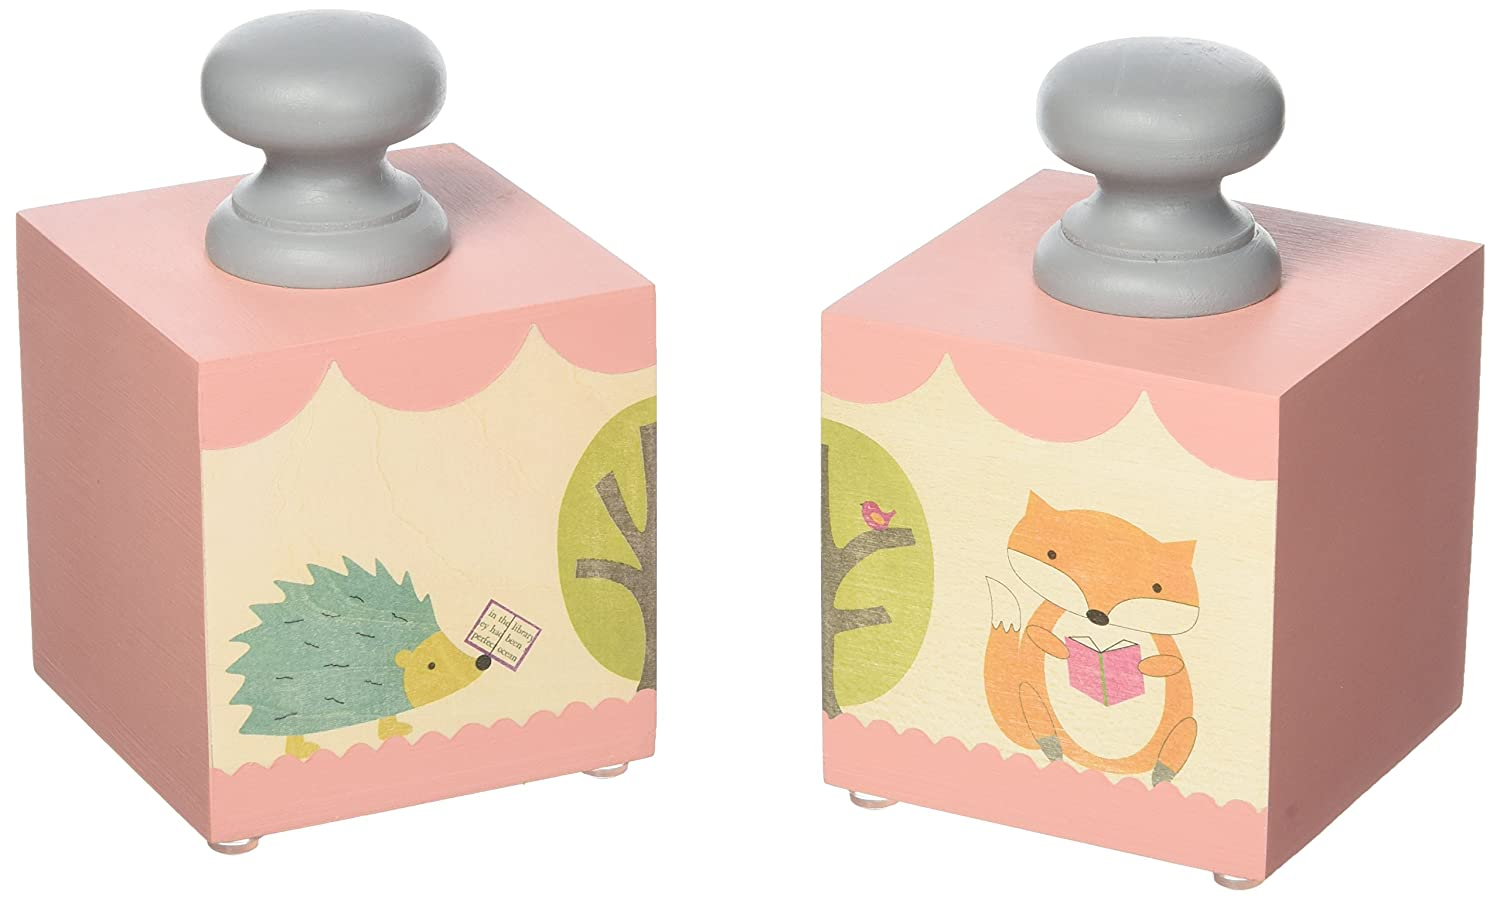 Tree by Kerri Lee Bookend Blocks, Fox/Hedgehog BKND BLKS PINK